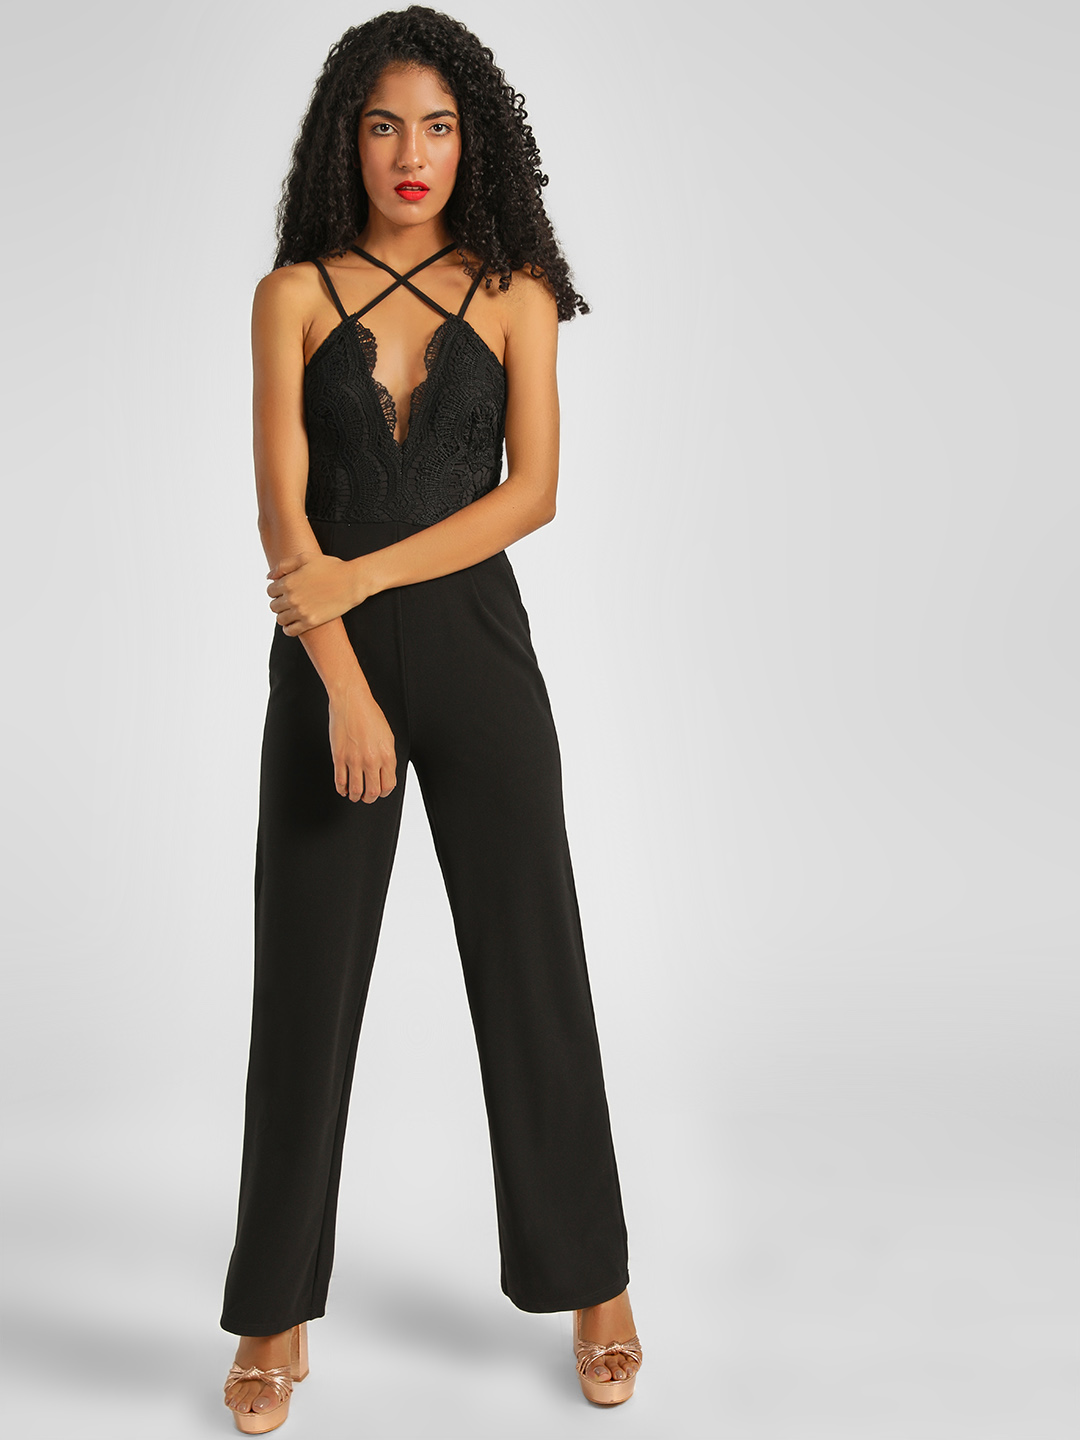 Girl in Mind Black Cross Strap Lace Top Jumpsuit 1